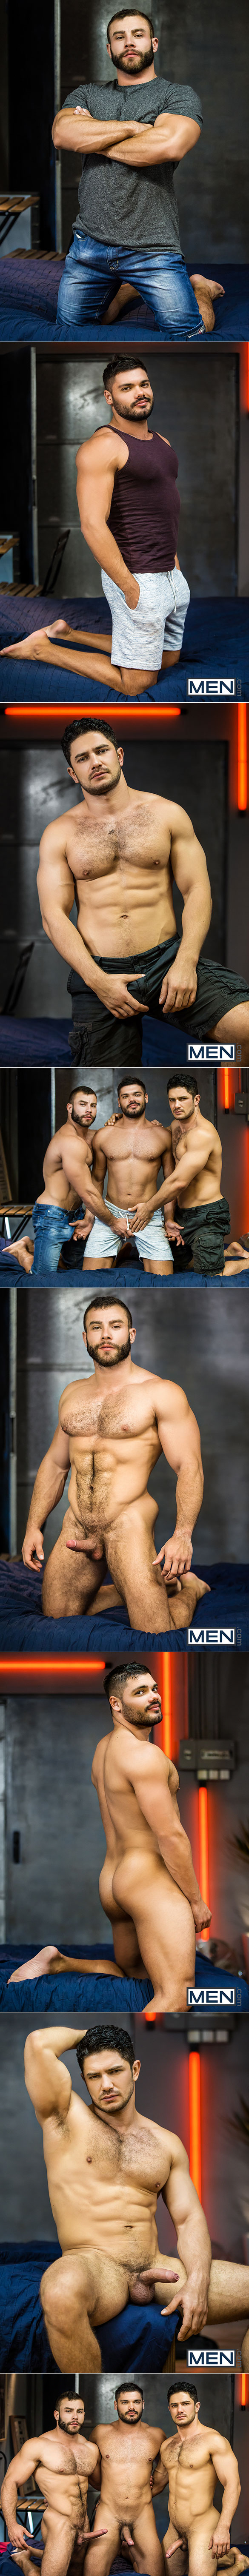 """Men.com: Dato Foland, Diego Reyes and Nicolas Brooks' threesome in """"The Boy Is Mine, Part 3"""""""